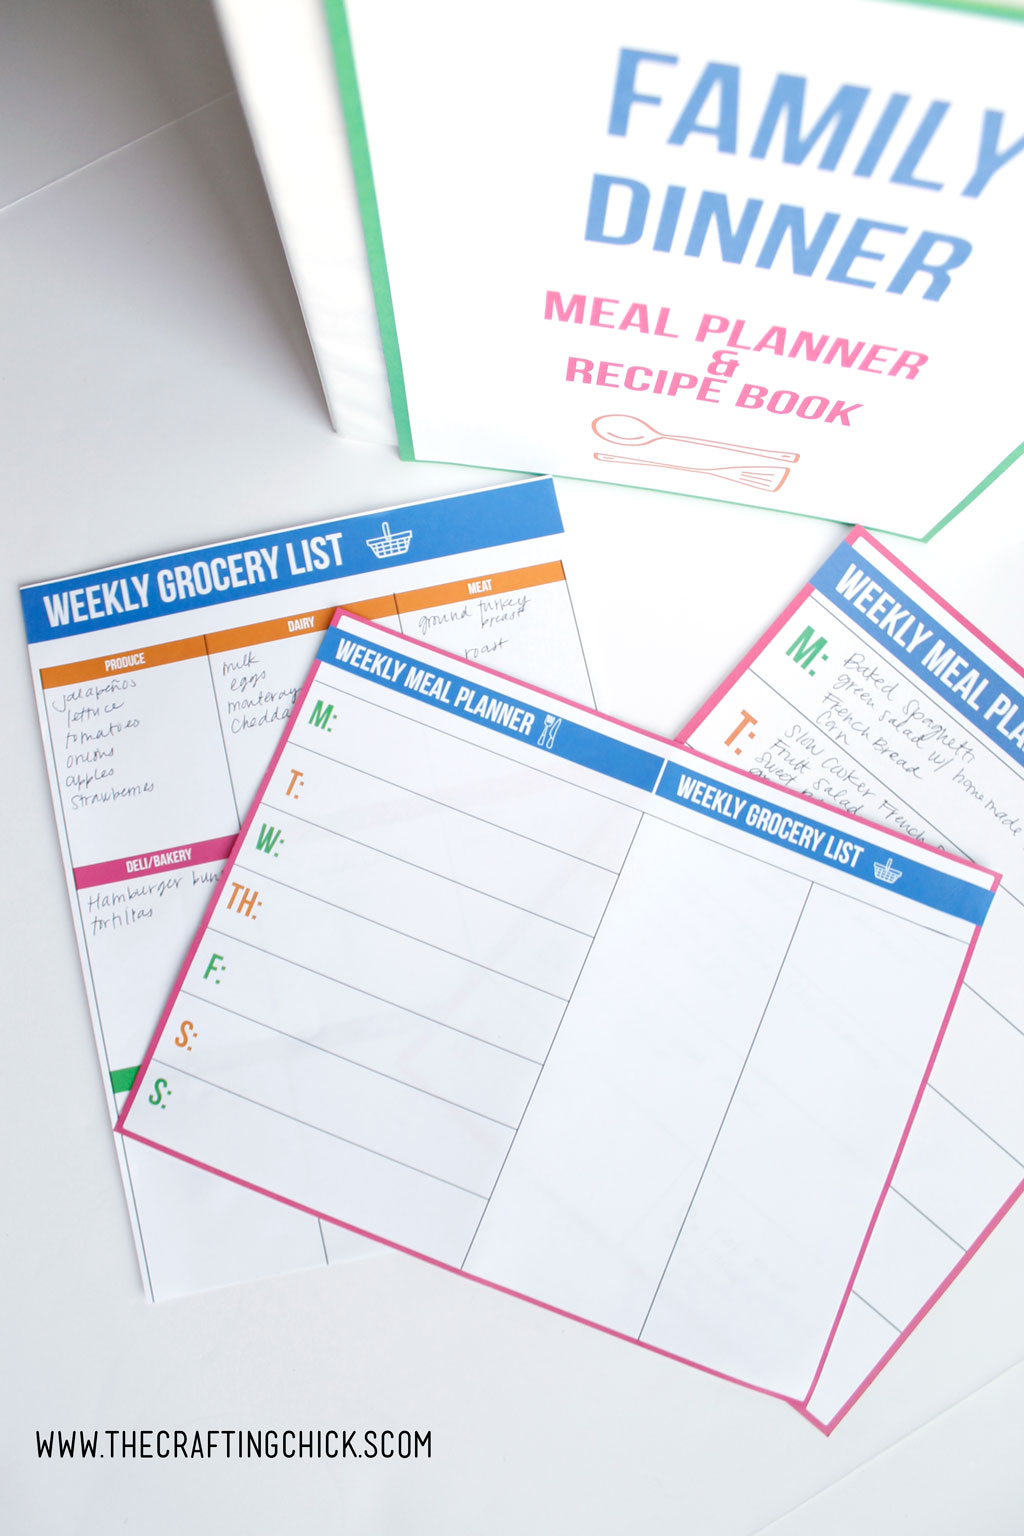 Meal Planning 101! We've got tips and ideas that will take your dinner time from stressful to done. Free printables included.